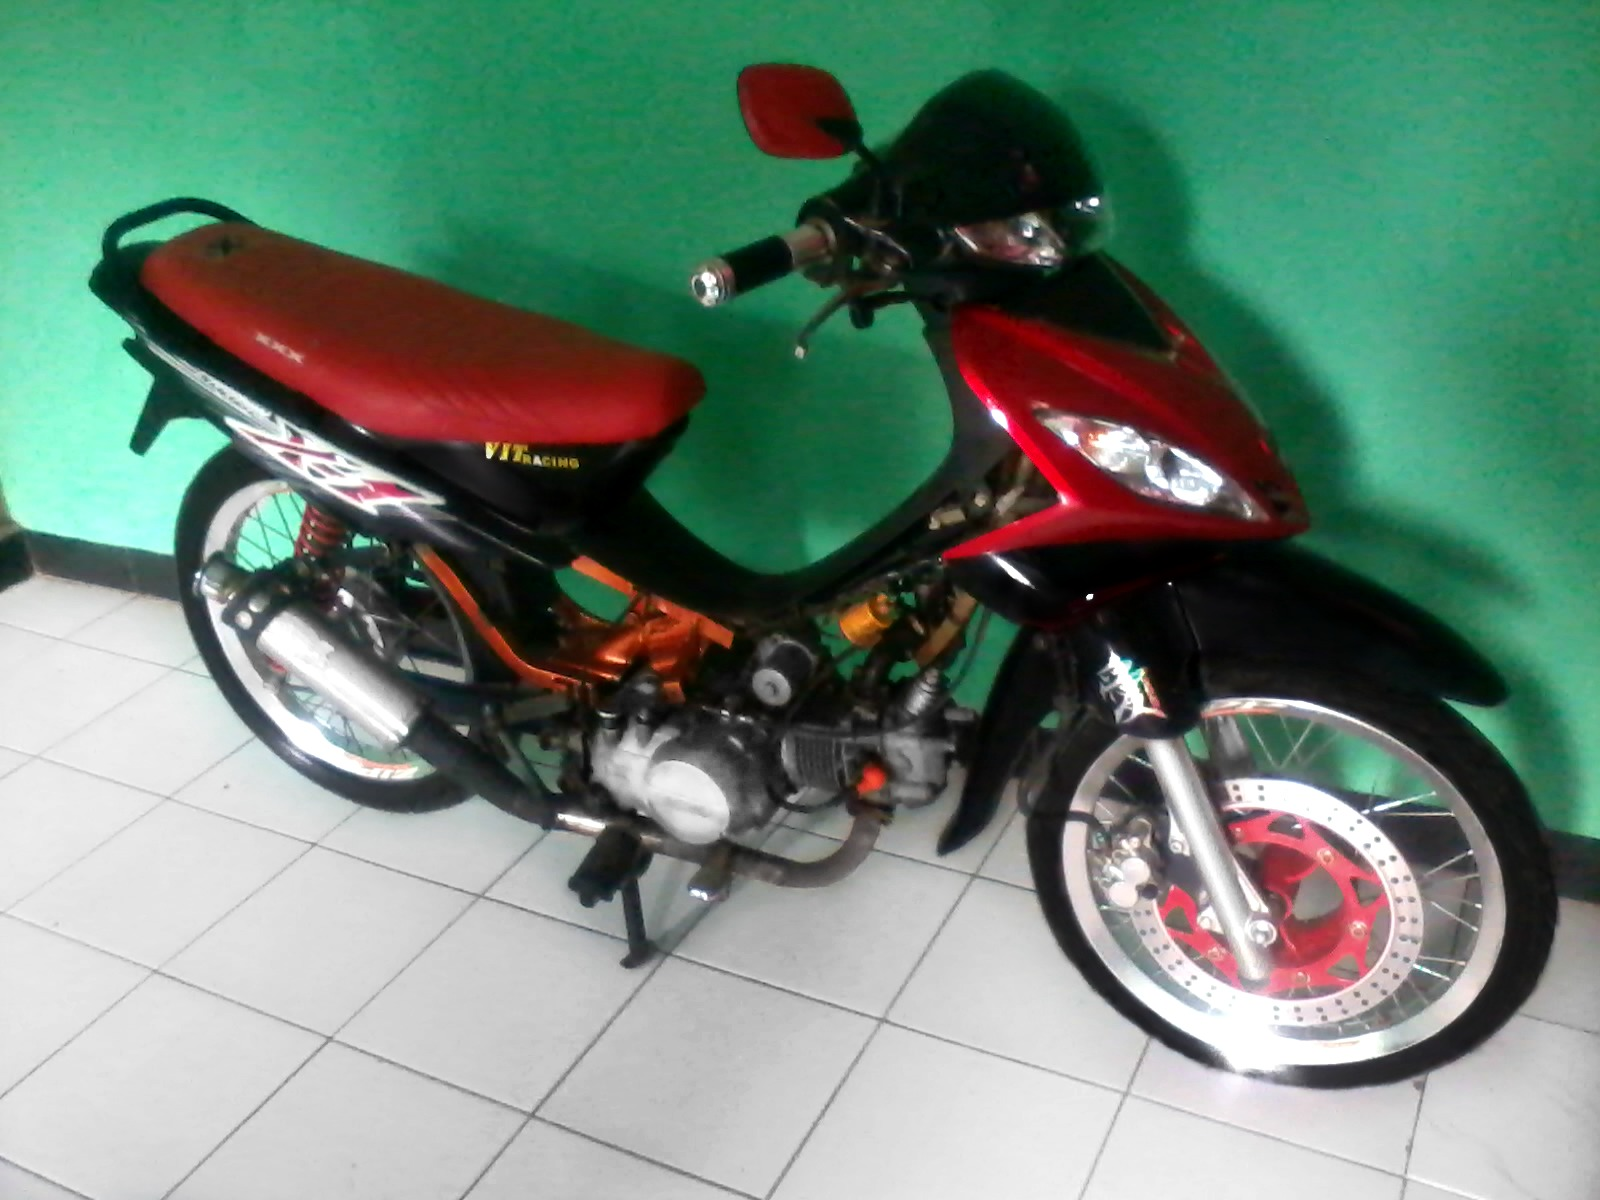 Modifikasi Motor Supra Fit 2006 Drag Terbaru Sukaon